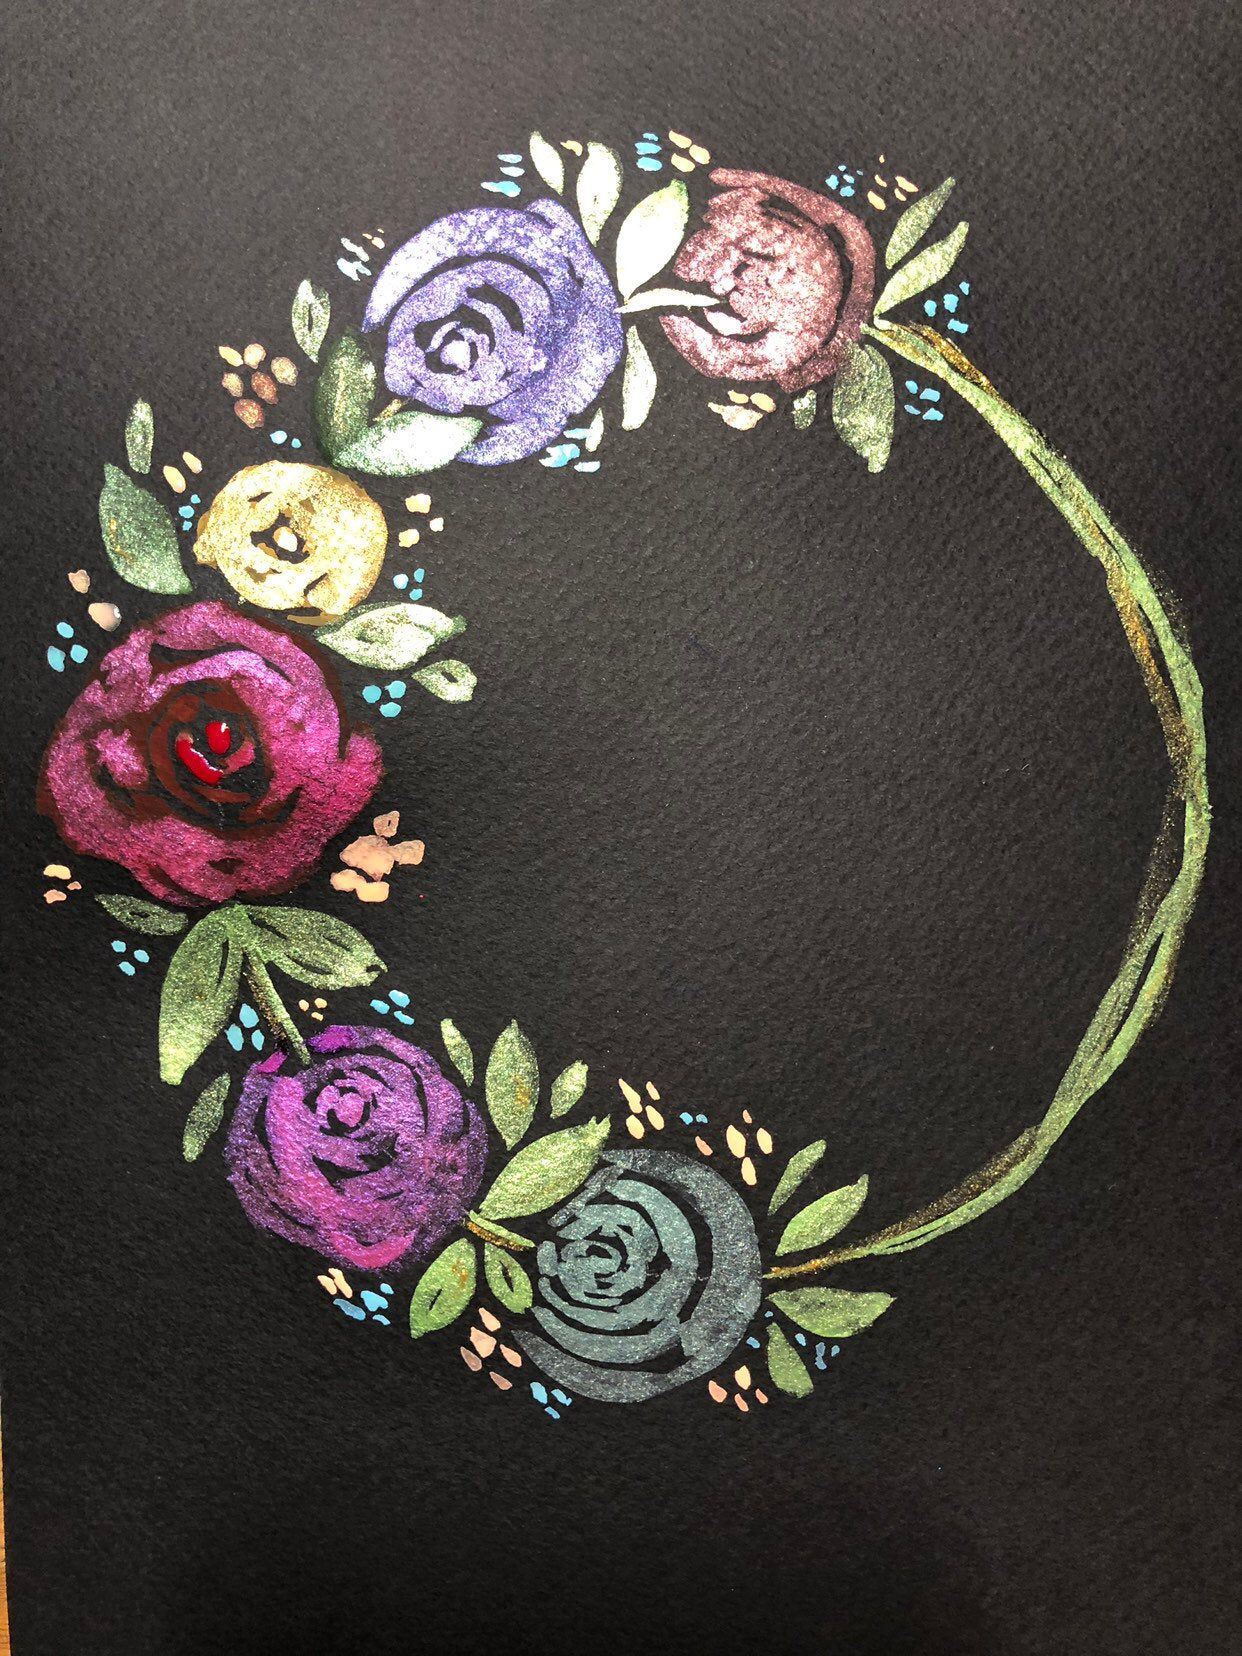 Floral Wreath In Watercolor On Black Paper Black Paper Drawing